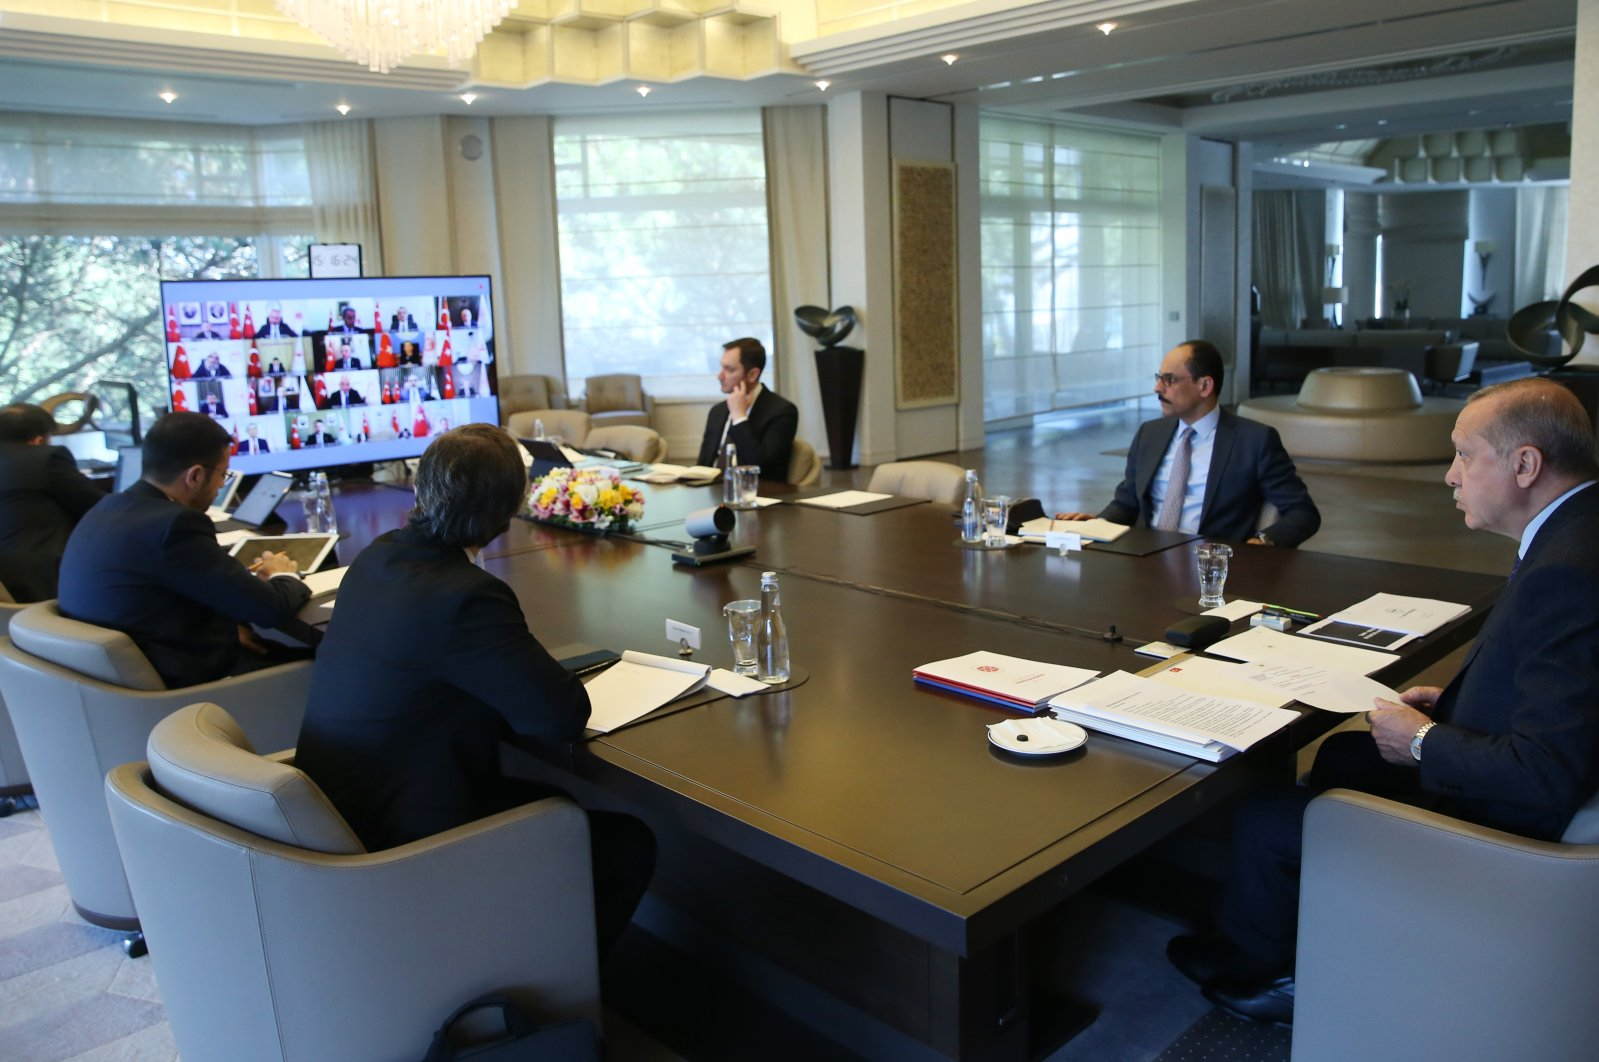 President Recep Tayyip Erdoğan chairs a Cabinet meeting via videoconference, April 13, 2020. (AA Photo)